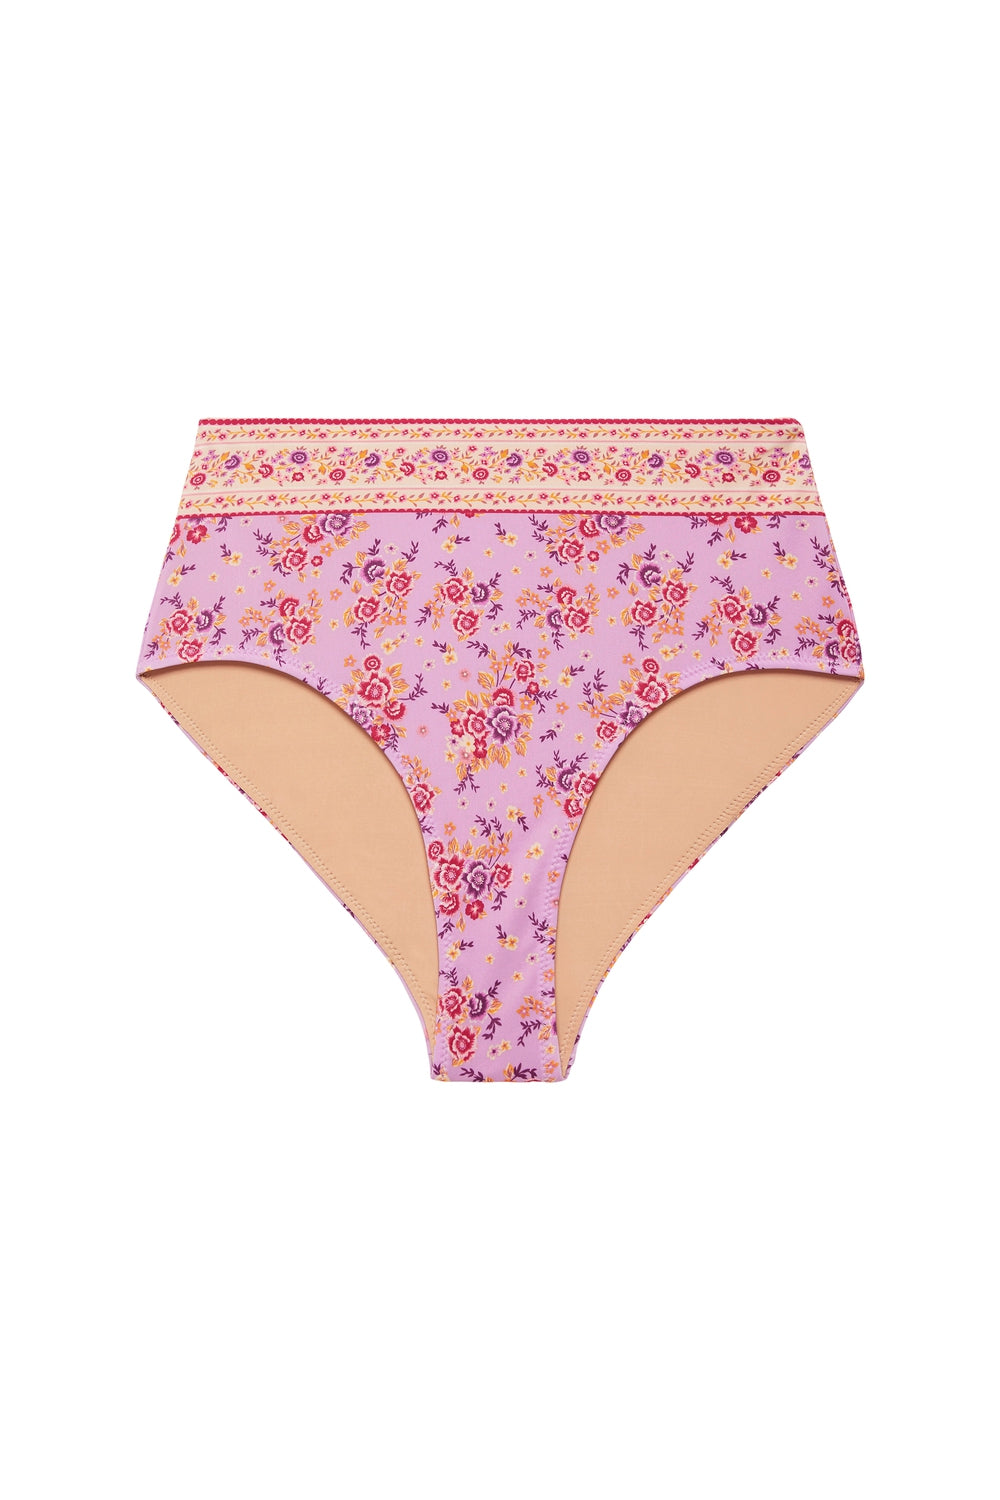 Harmony Hi Waist Bottom in Lilac